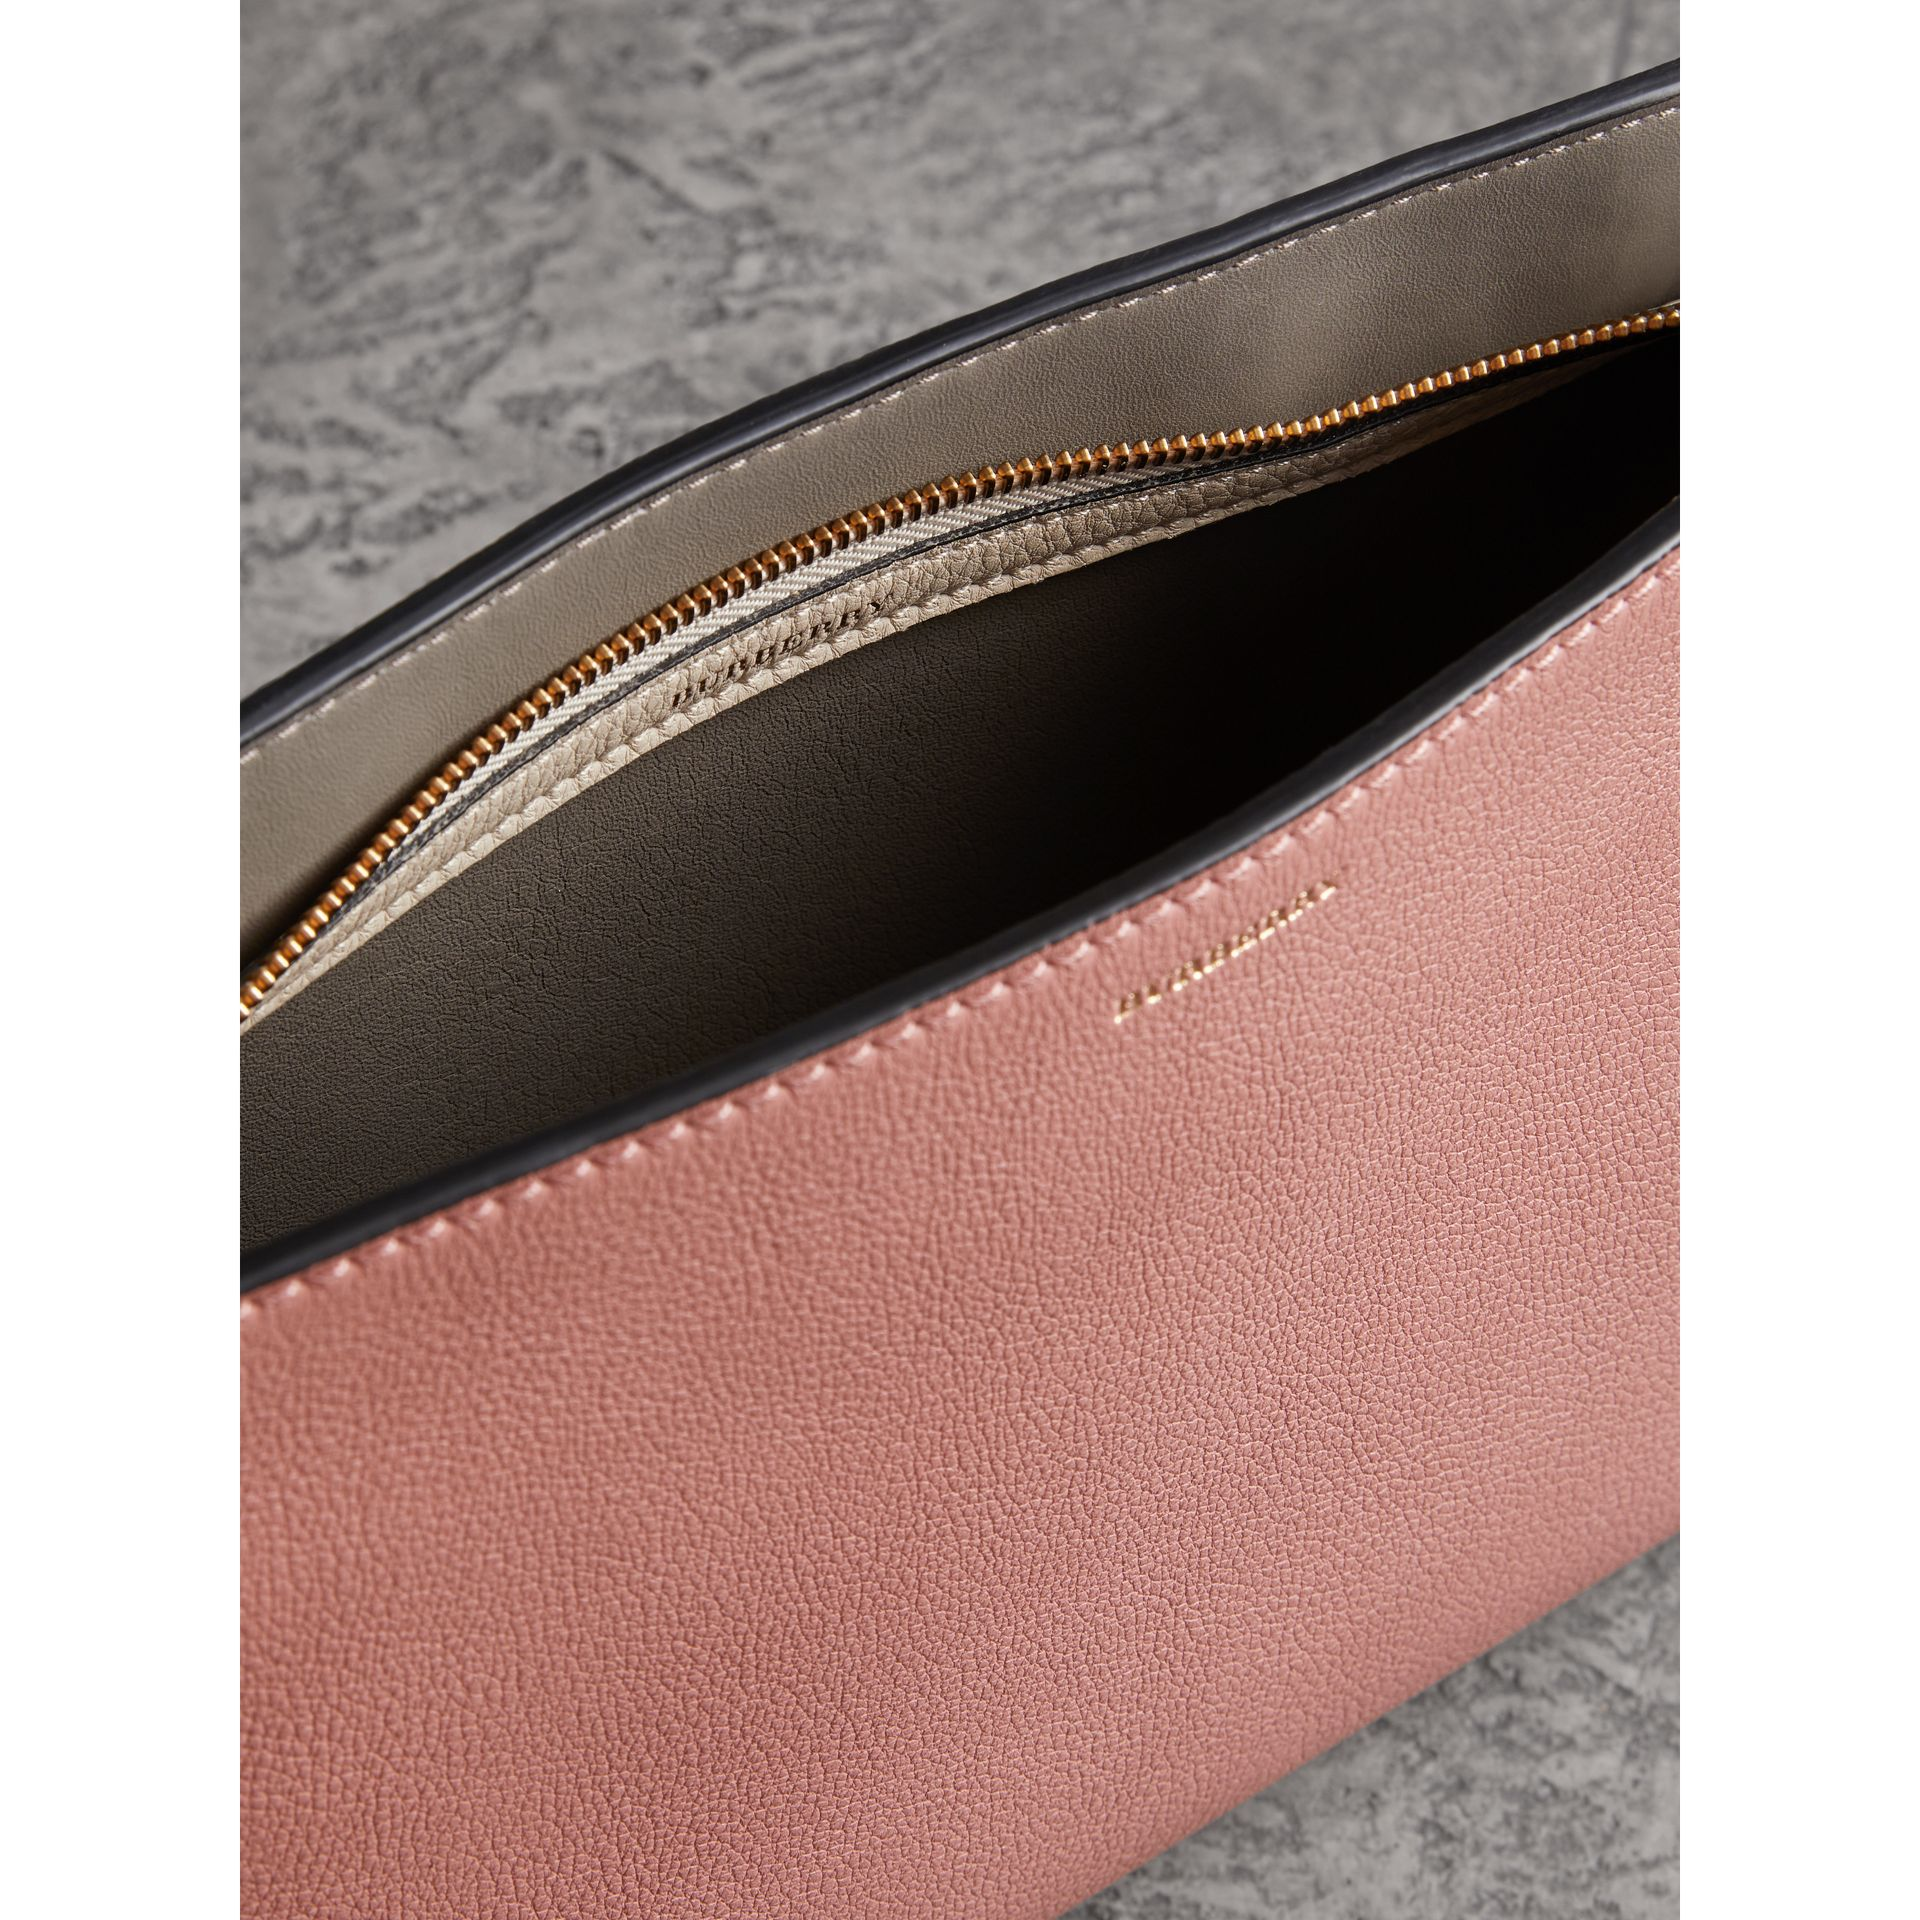 Medium Tri-tone Leather Clutch in Dusty Rose/limestone | Burberry Australia - gallery image 5